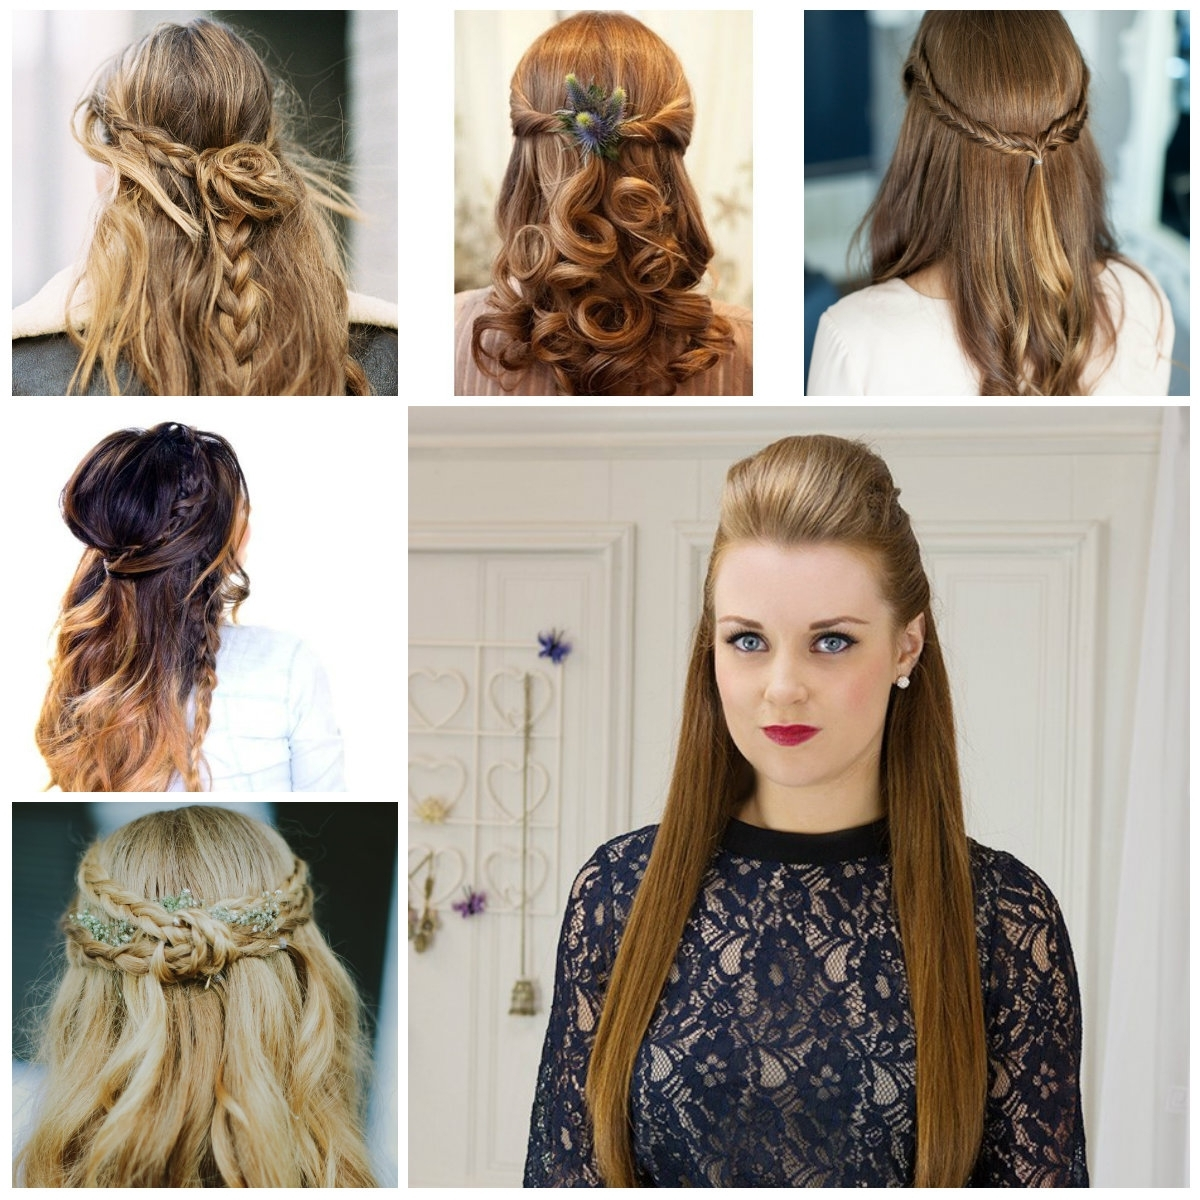 Fashionable Easy Wedding Hairstyles For Long Straight Hair Pertaining To Dressy Hairstyles For Long Straight Hair In Cute Cool Easy Hairstyle (View 2 of 15)